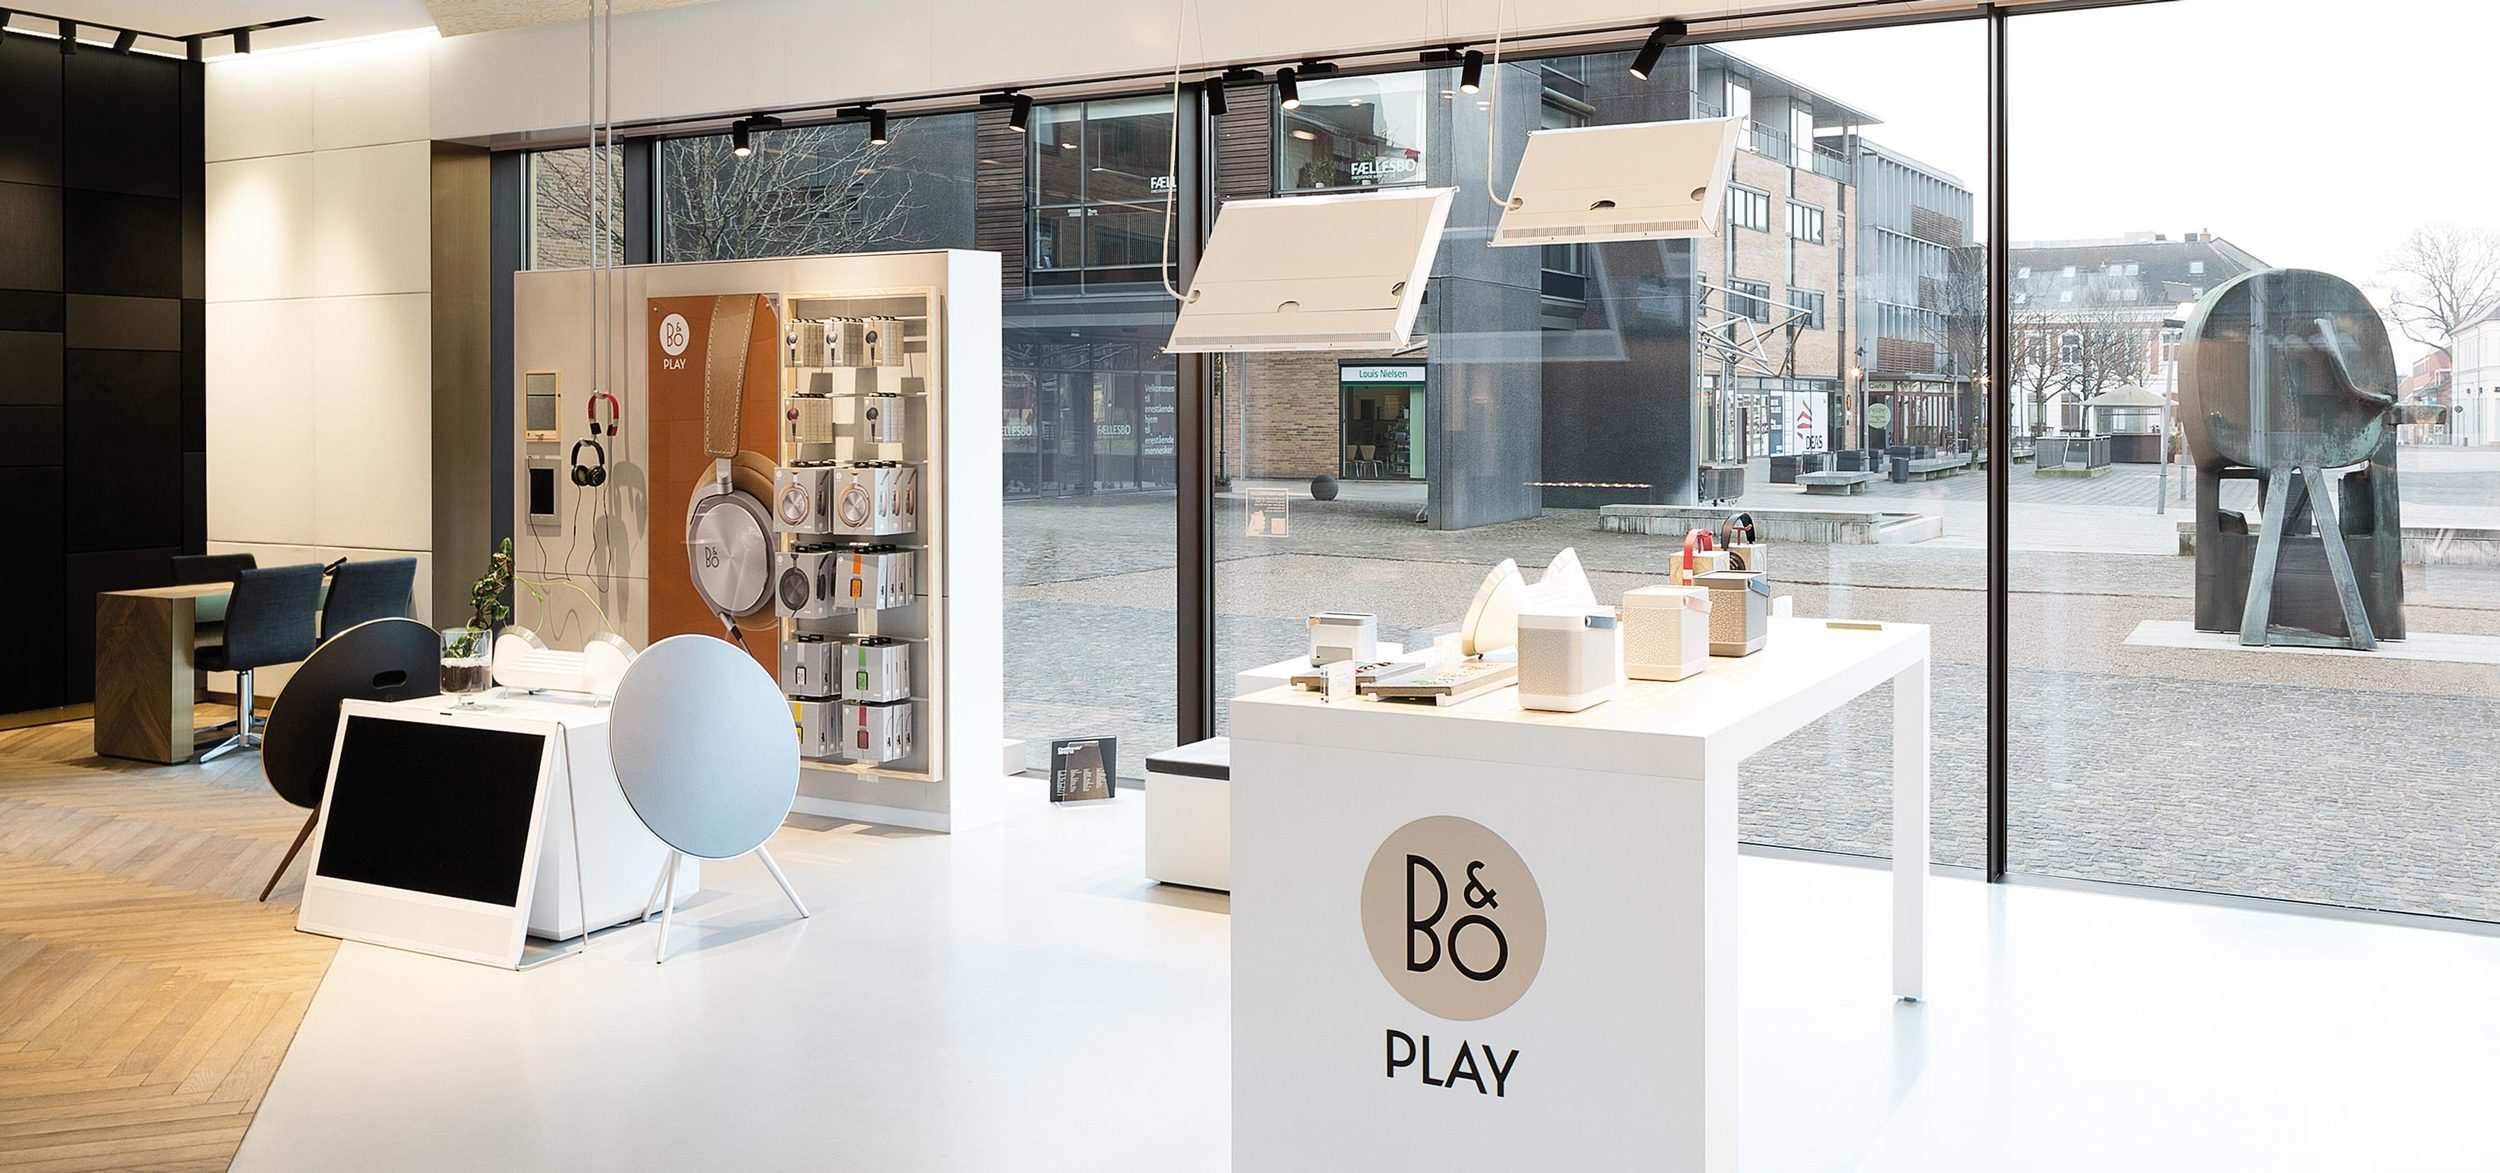 Store in store design concept 'B&O Play' integrated in Bang & Olufsen shops worldwide